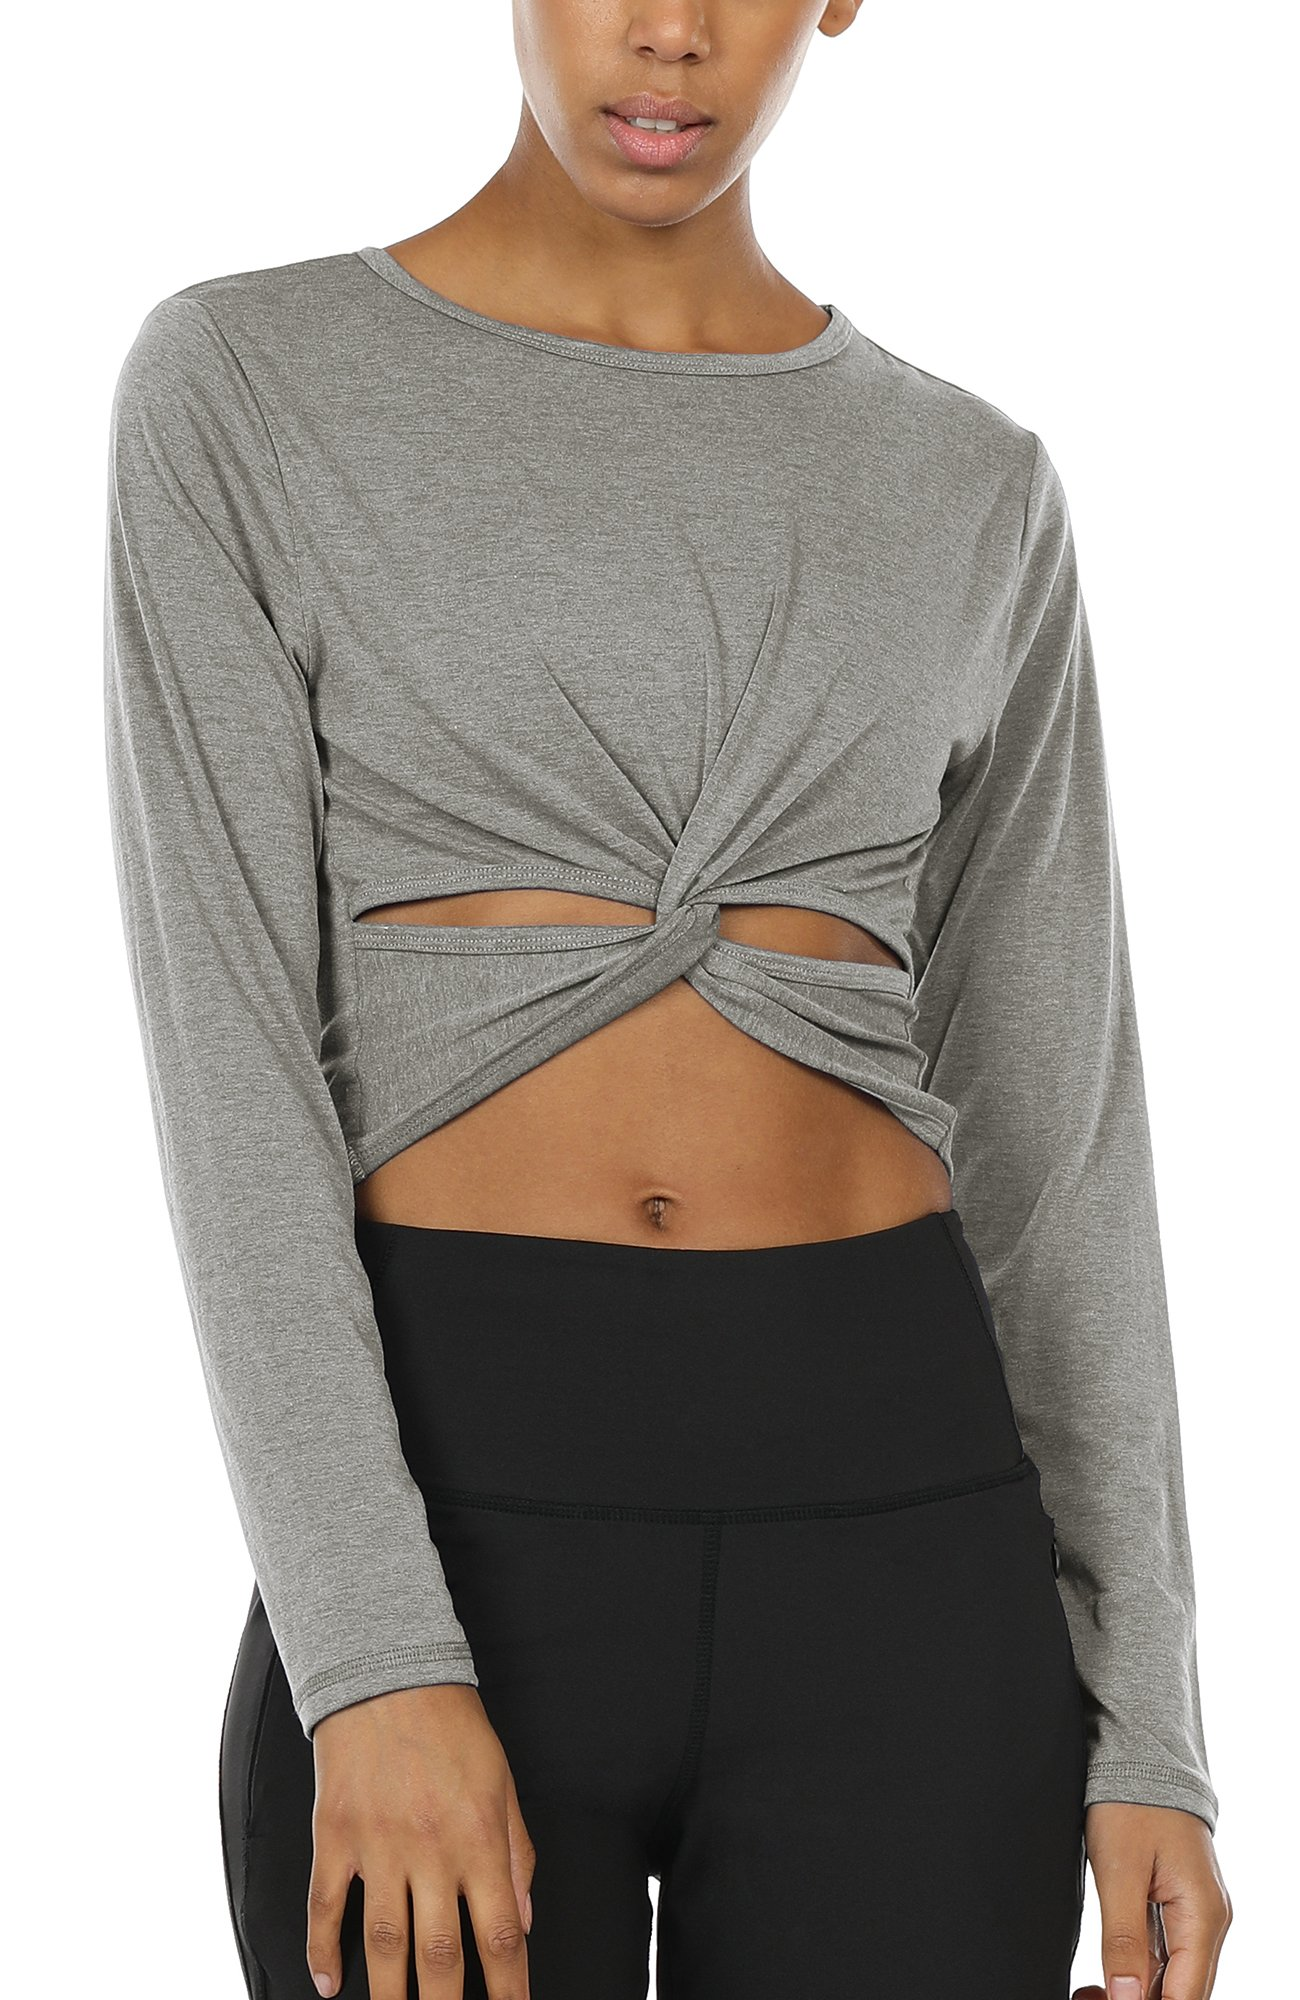 icyzone Long Sleeve Cross Wrap Crop Tops T-shirts for Women Stretchy Slim Fit (Grey, M)